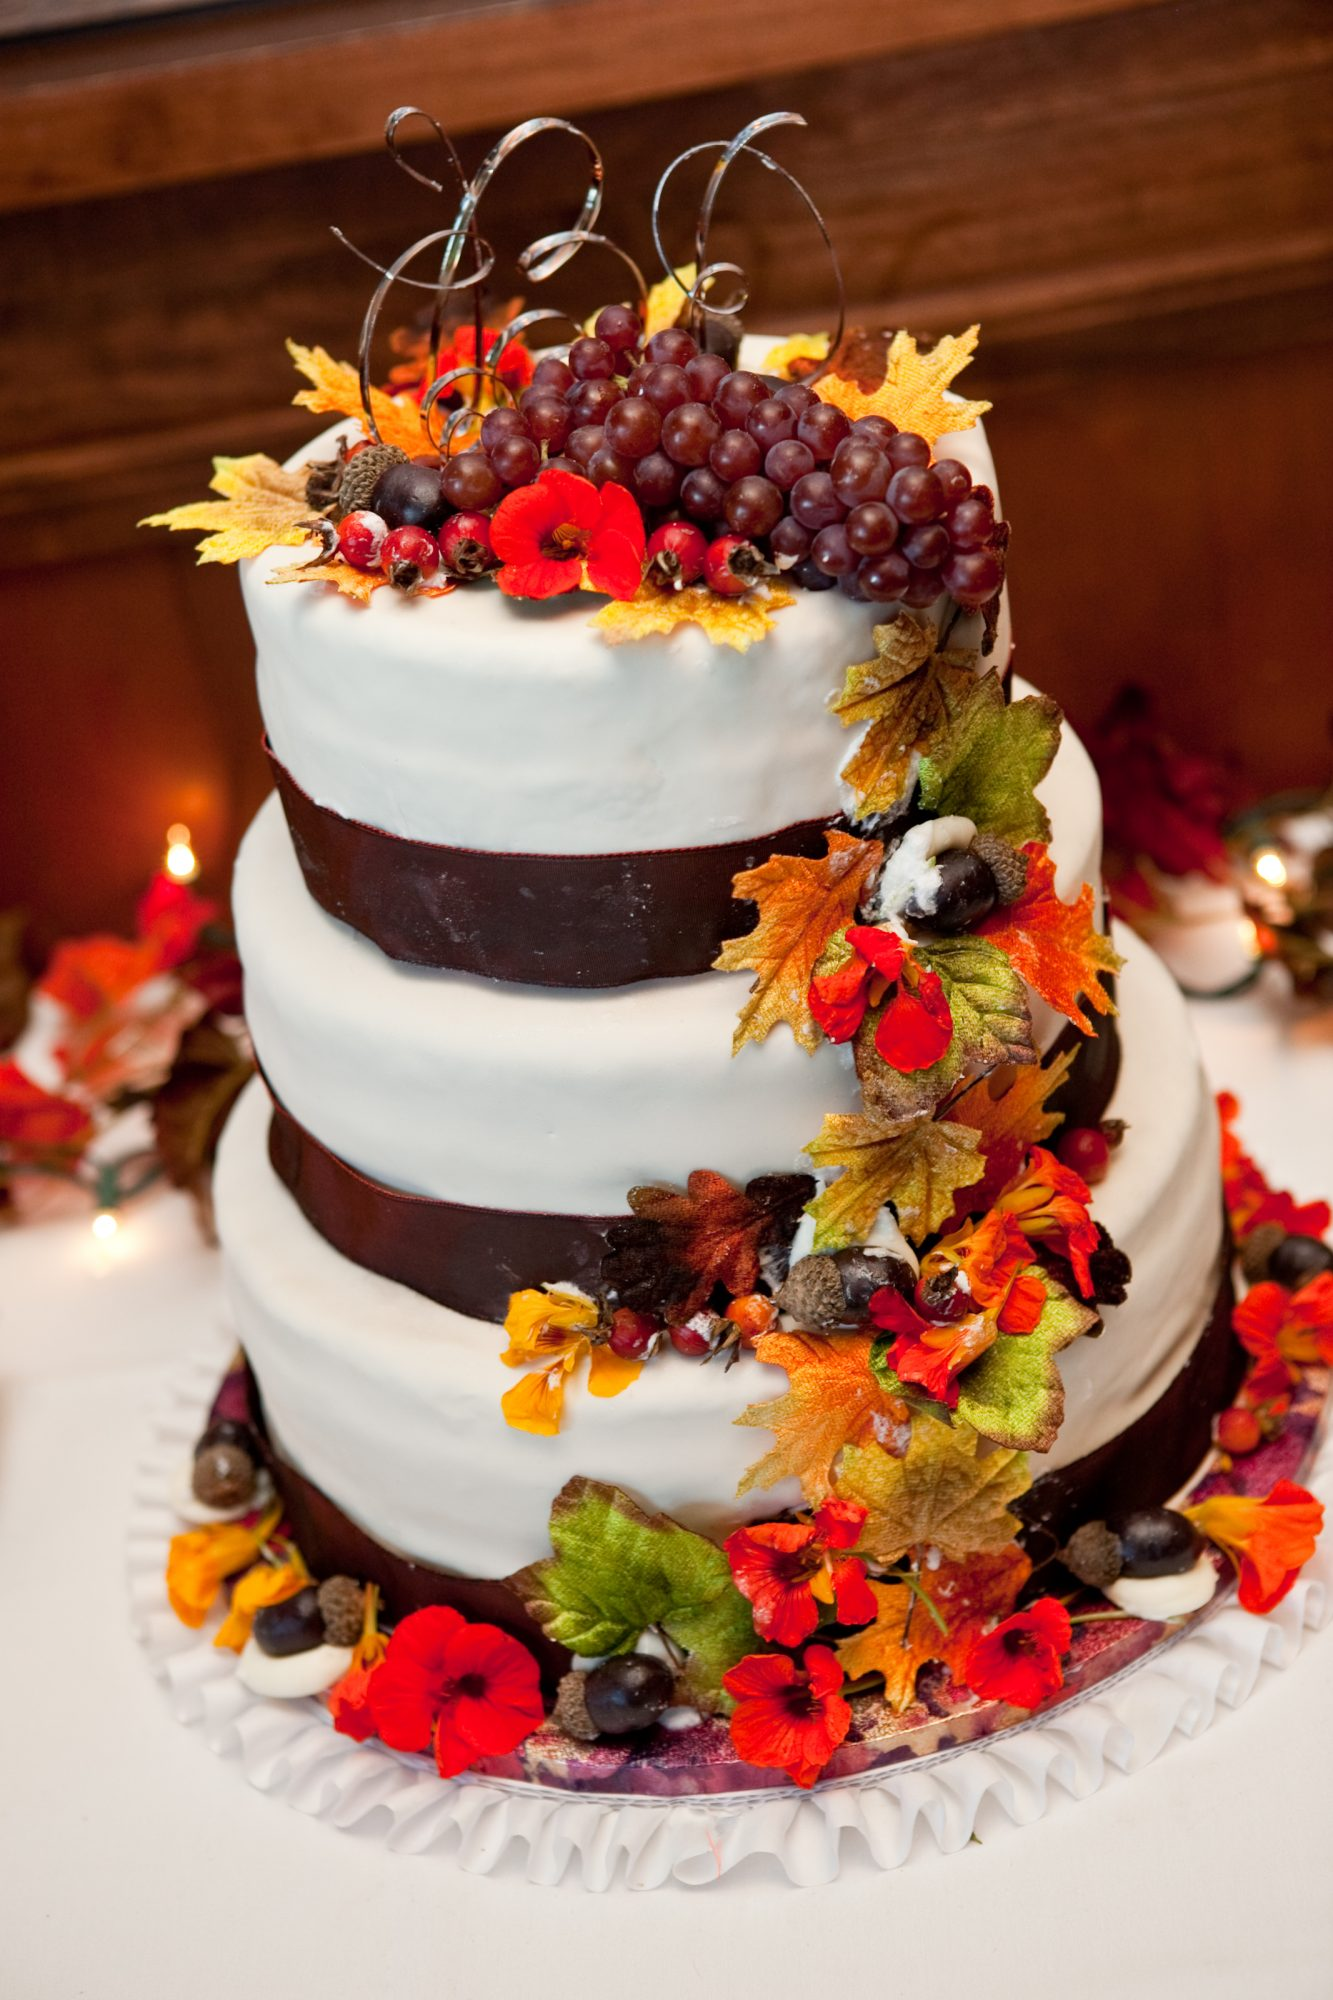 Beautiful Fall Wedding Cake with Grapes, Autumn Leaves, and Acorns